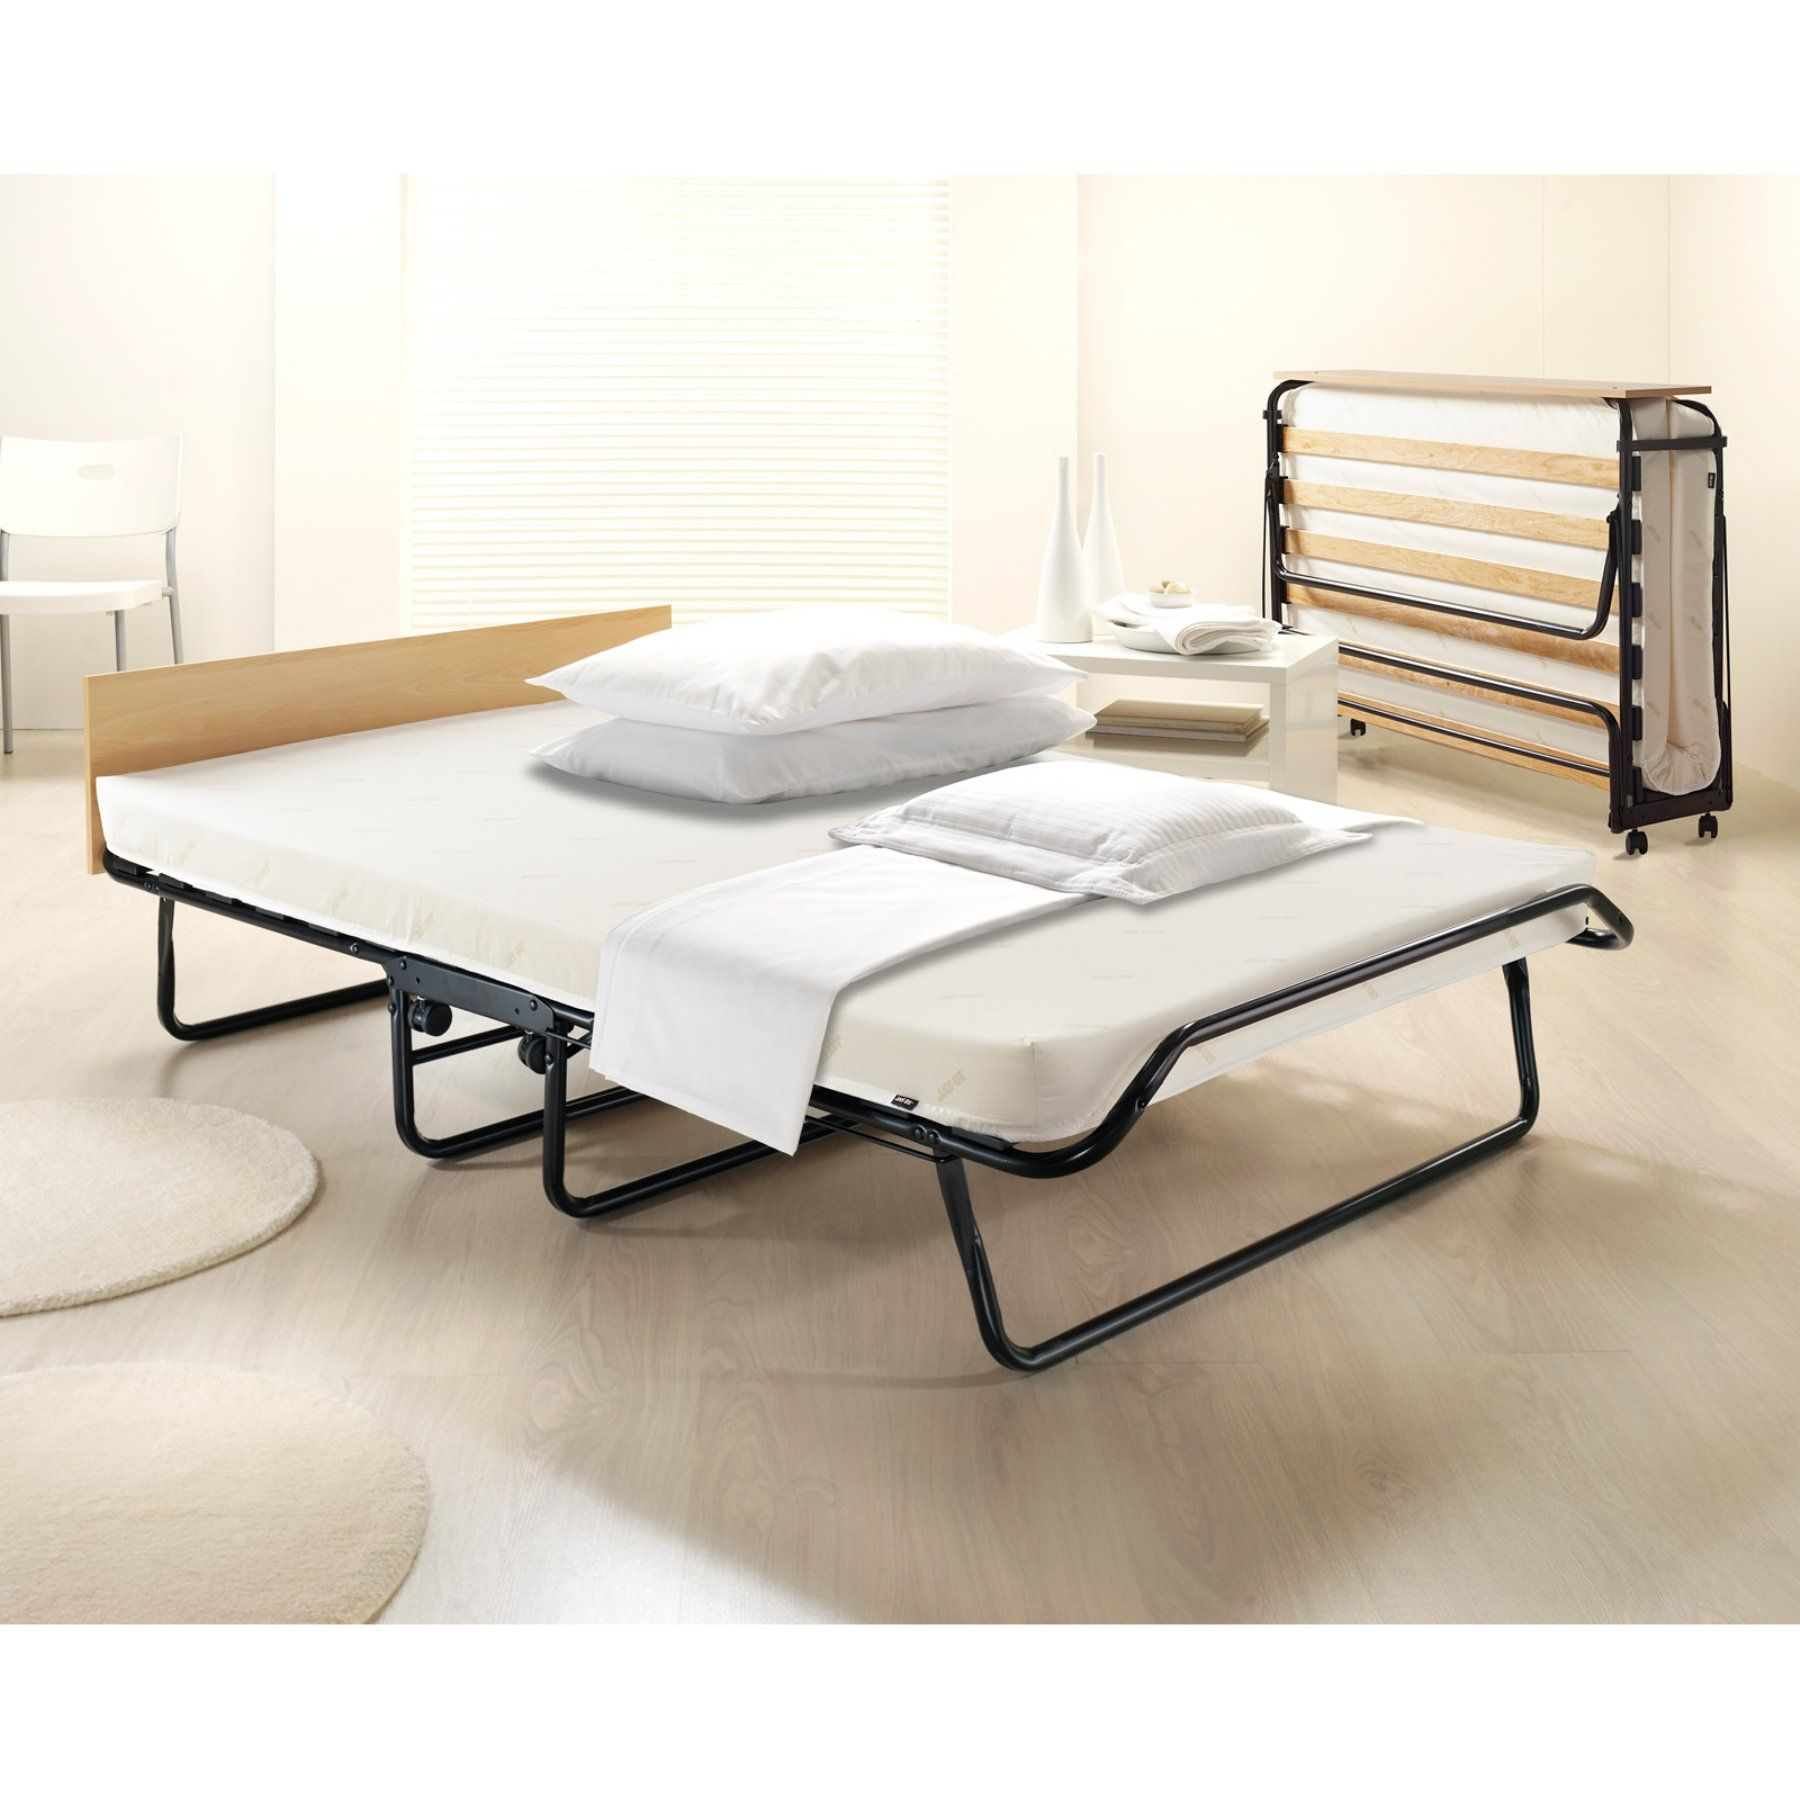 - Jay-Be Contour Folding Bed With Airflow Mattress - 105803